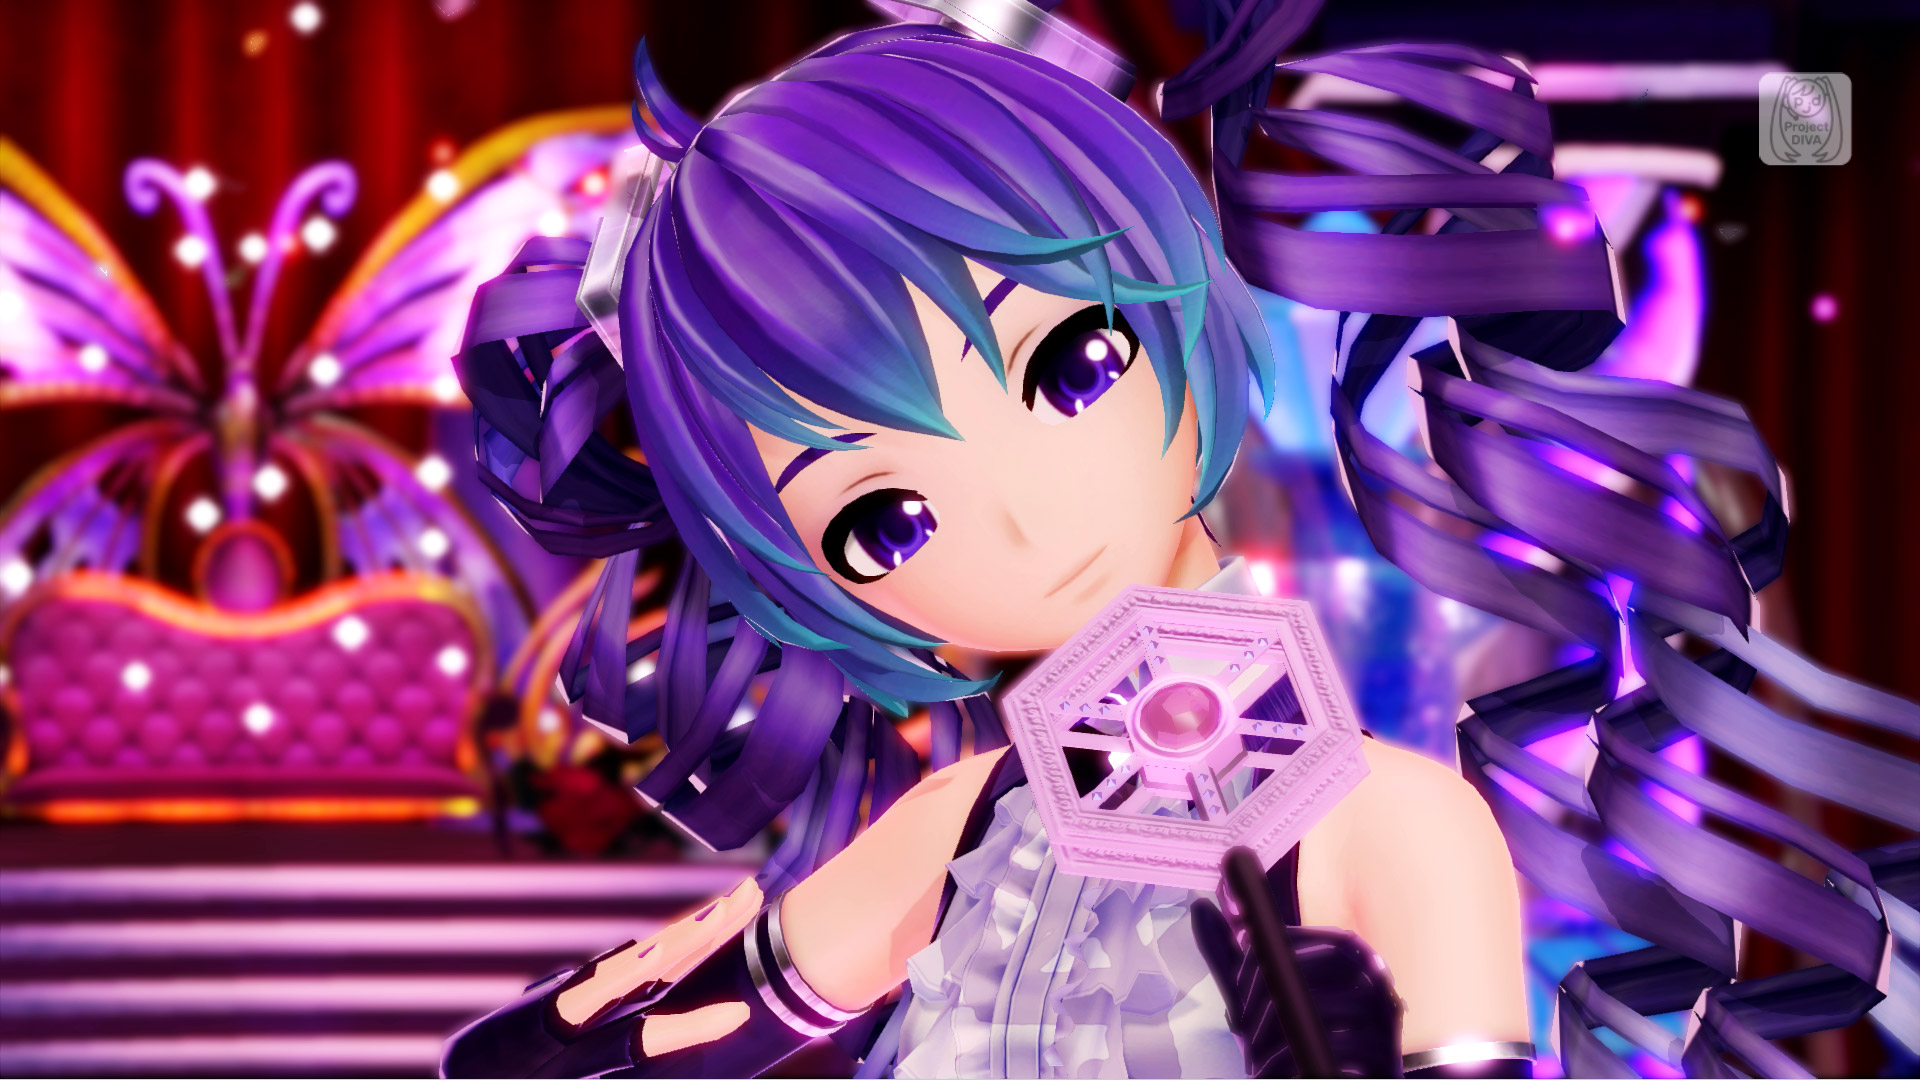 Sega europe looking into bringing project diva x to europe ideas for the 20th anniversary of - Hatsune miku project diva x ...